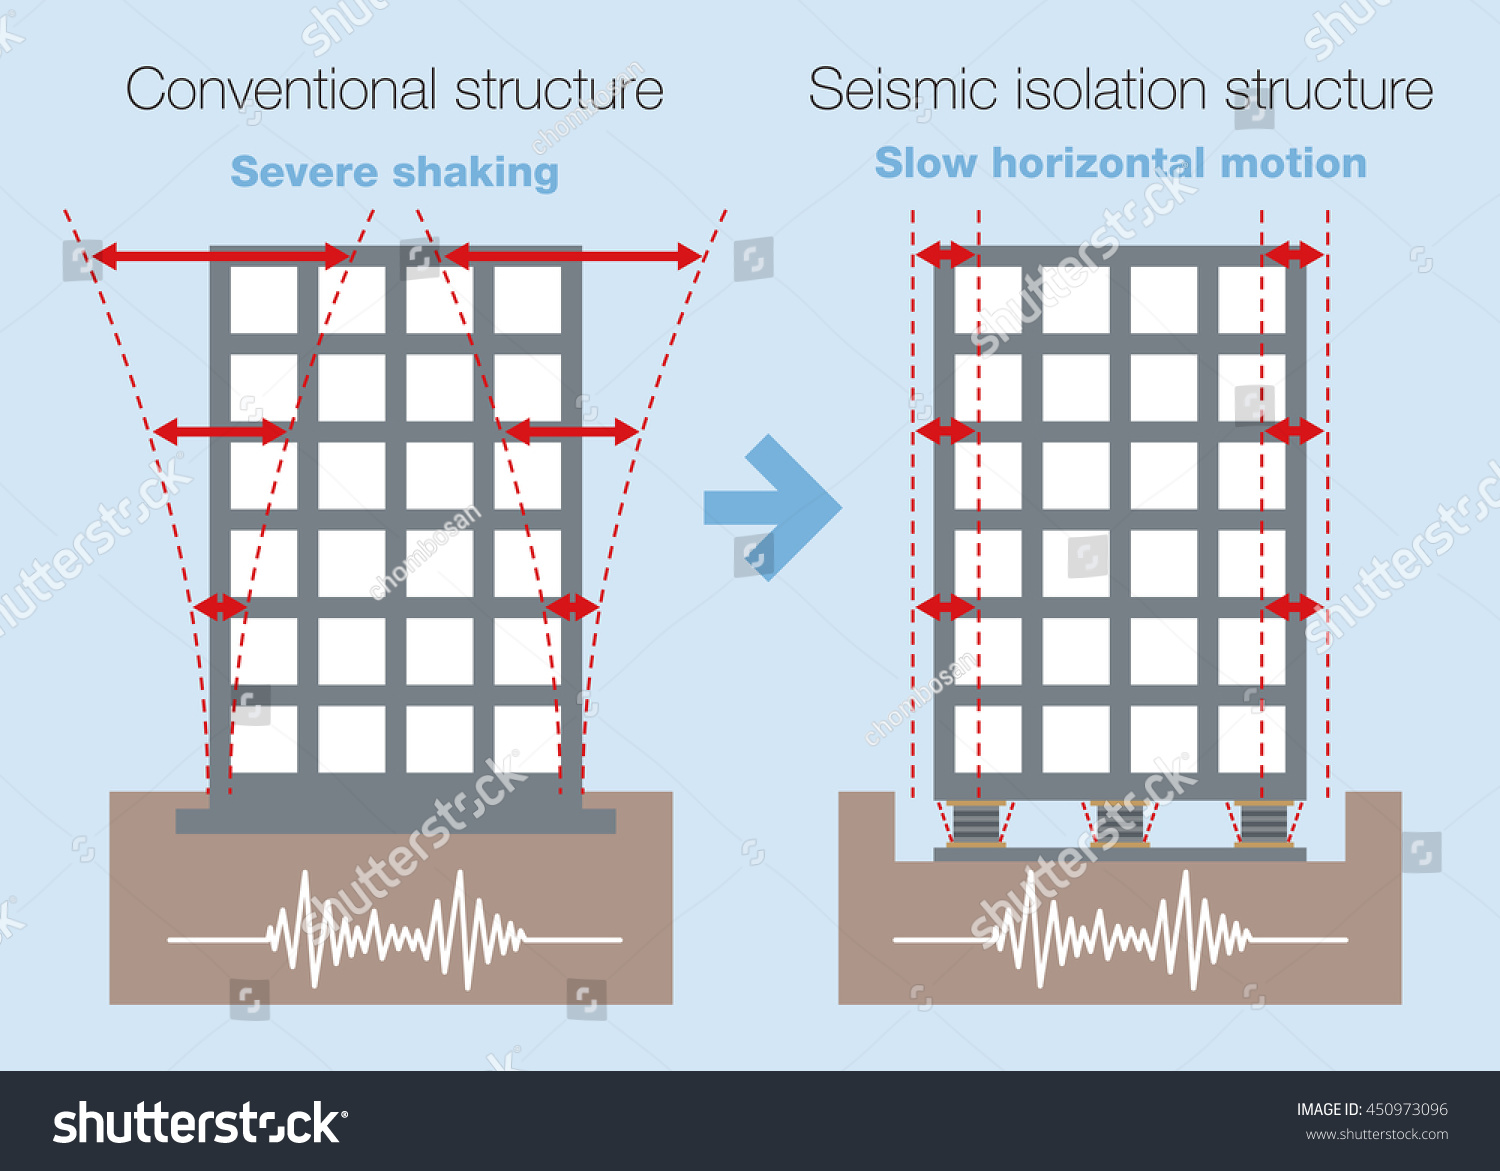 House design earthquake proof - Earthquake Resistant Structure Contrast Diagram Conventional Structure And Isolated Building Base Isolated System